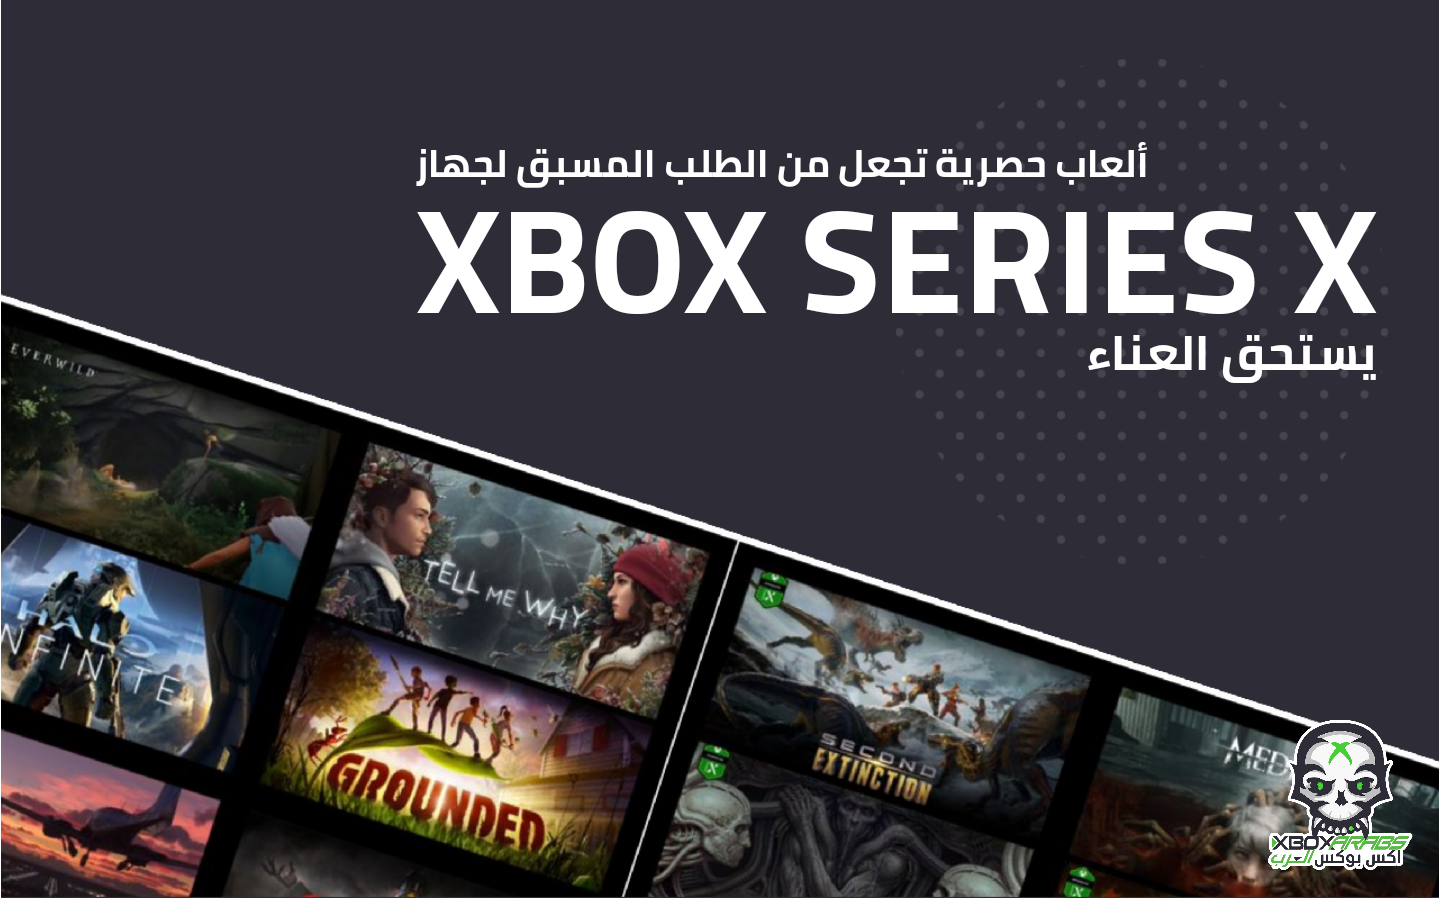 XBOX Series X Exclusive Games worth Preorder